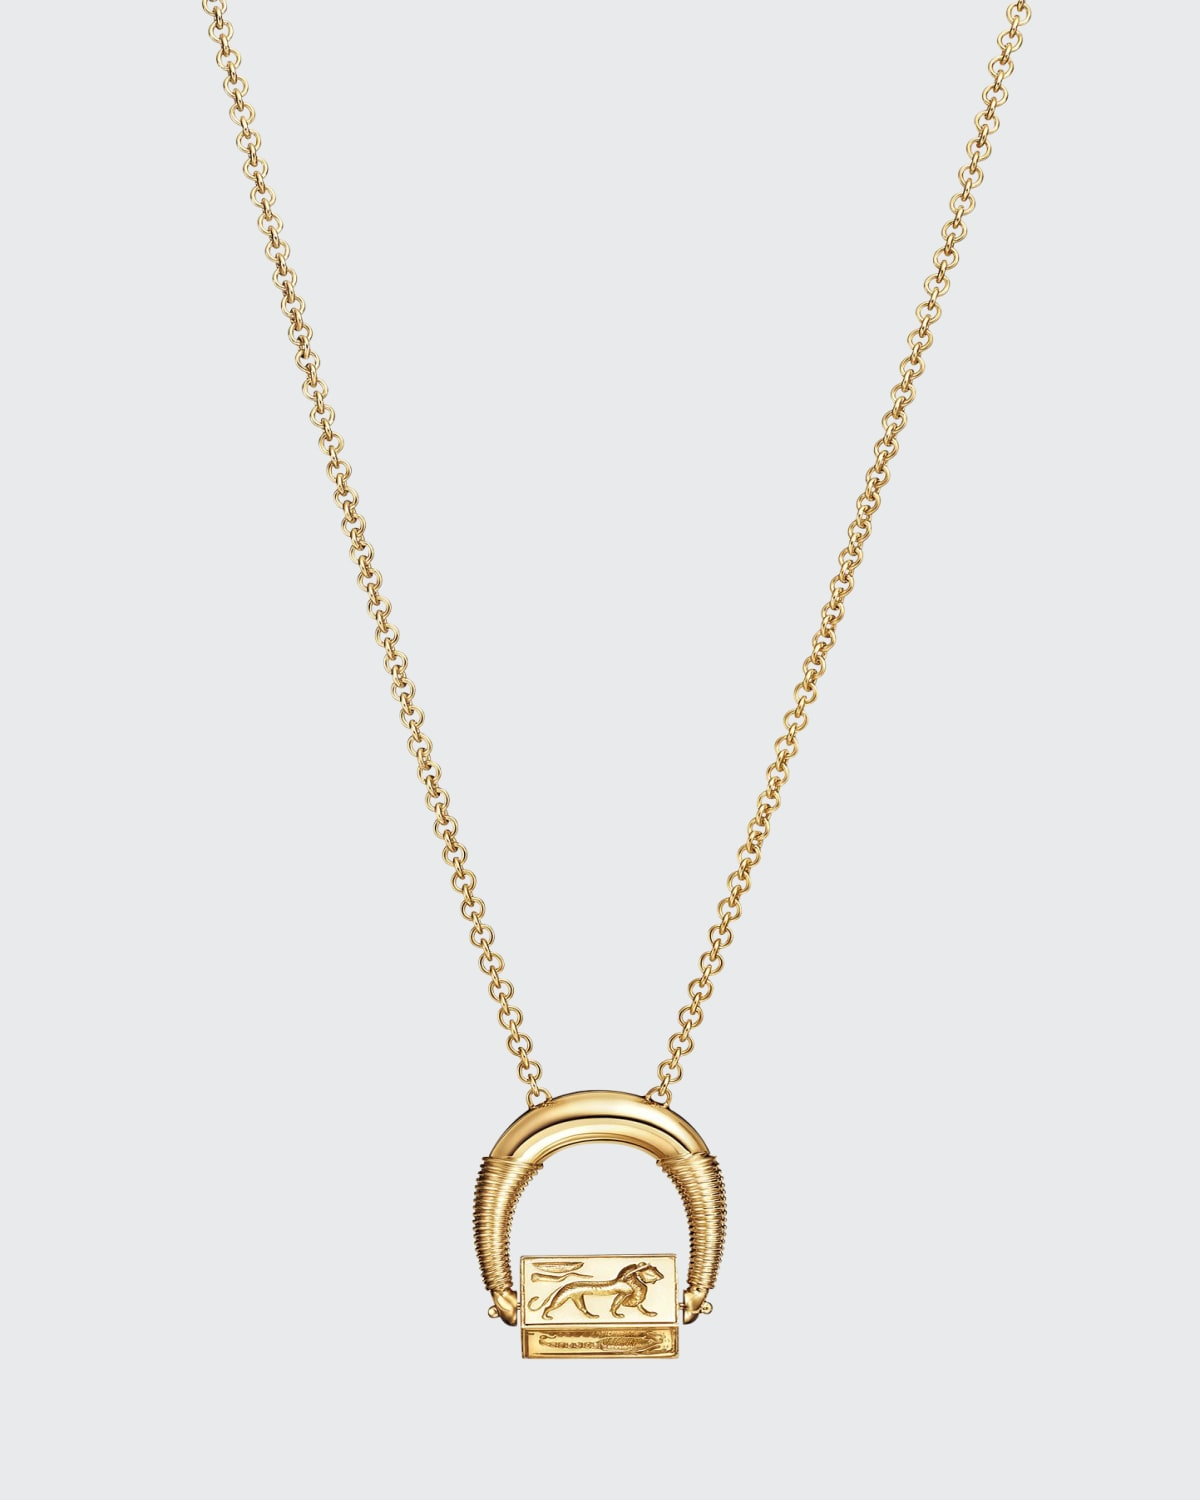 Odyssey Necklace In 18K Fairmined Gold